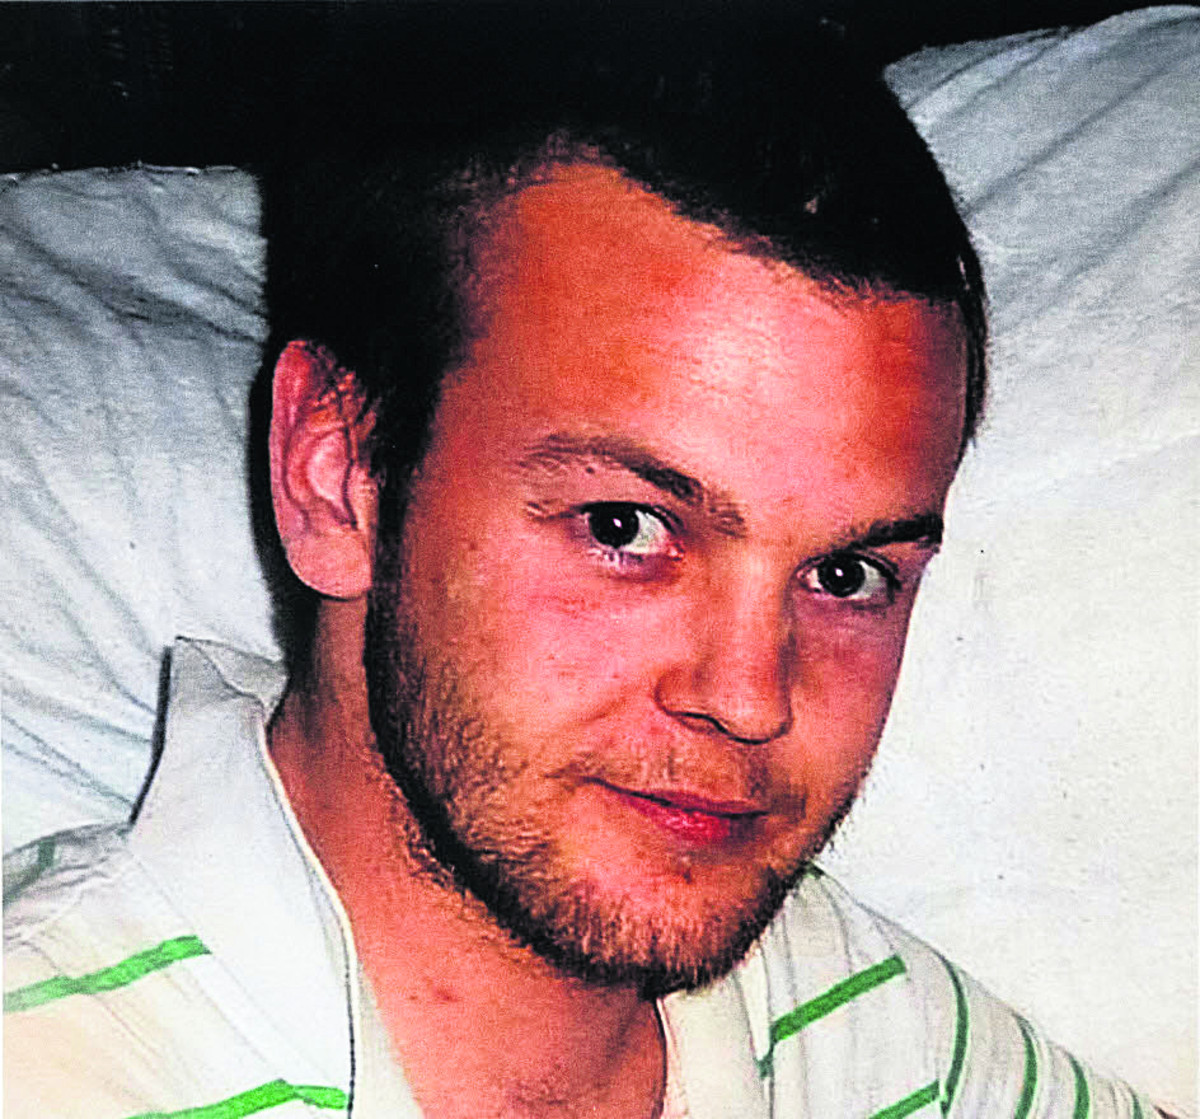 Chris Scott, who died after taking a legal high